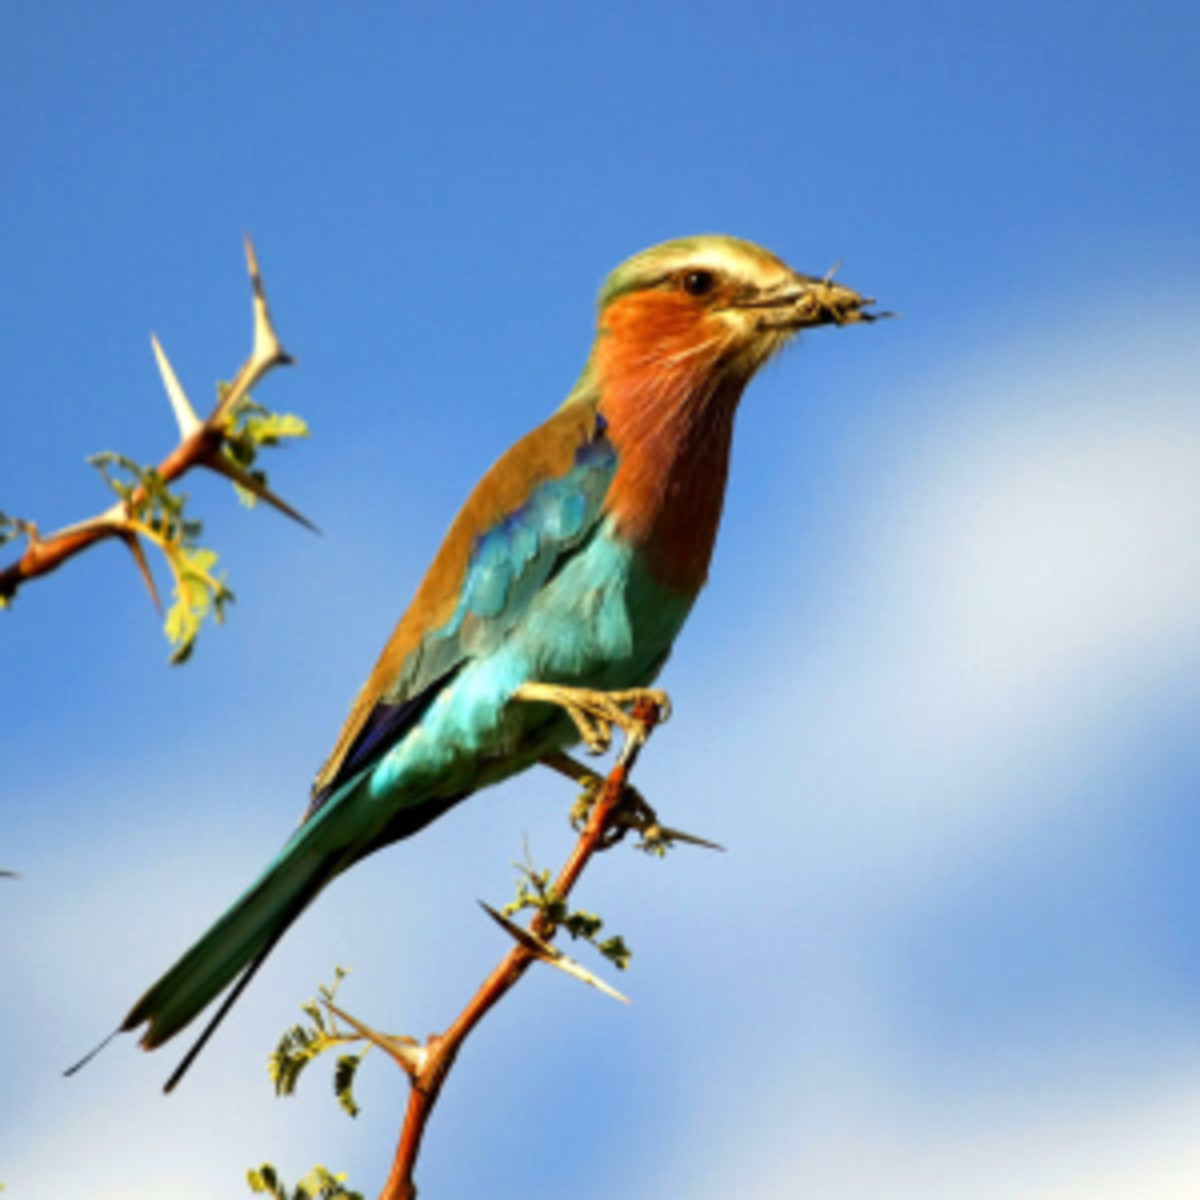 Lilac breasted Roller with Grasshopper on Acacia tree in Botswana